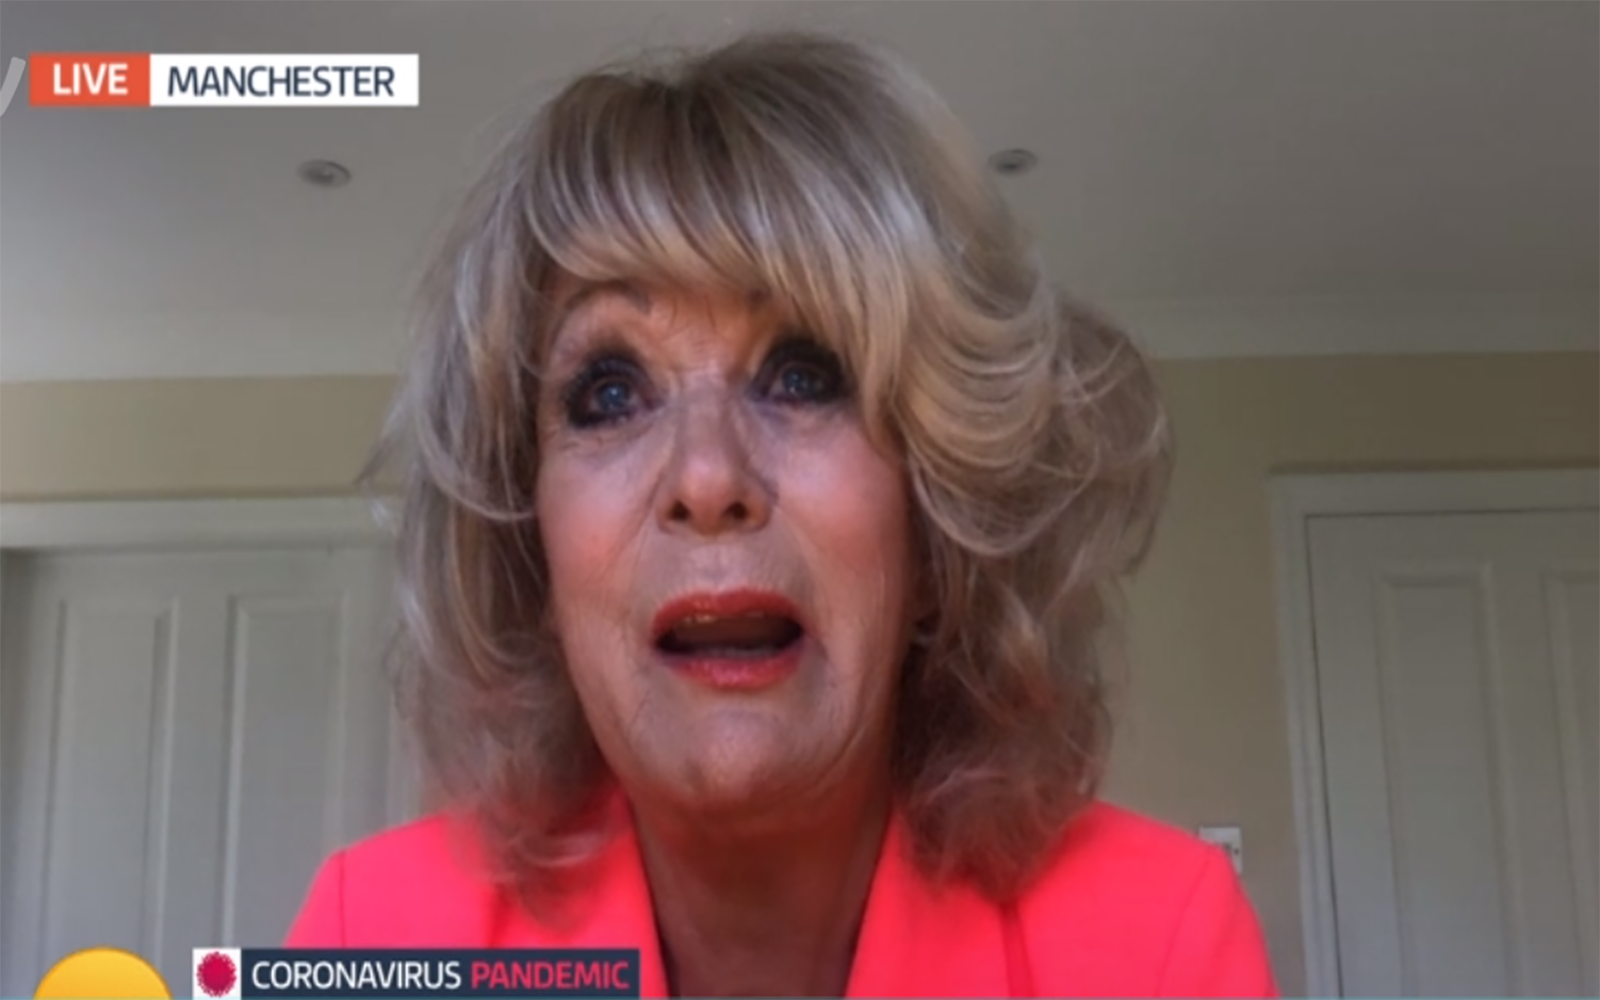 Sherrie Hewson in tears as she can't see terminally ill brother amid coronavirus crisis